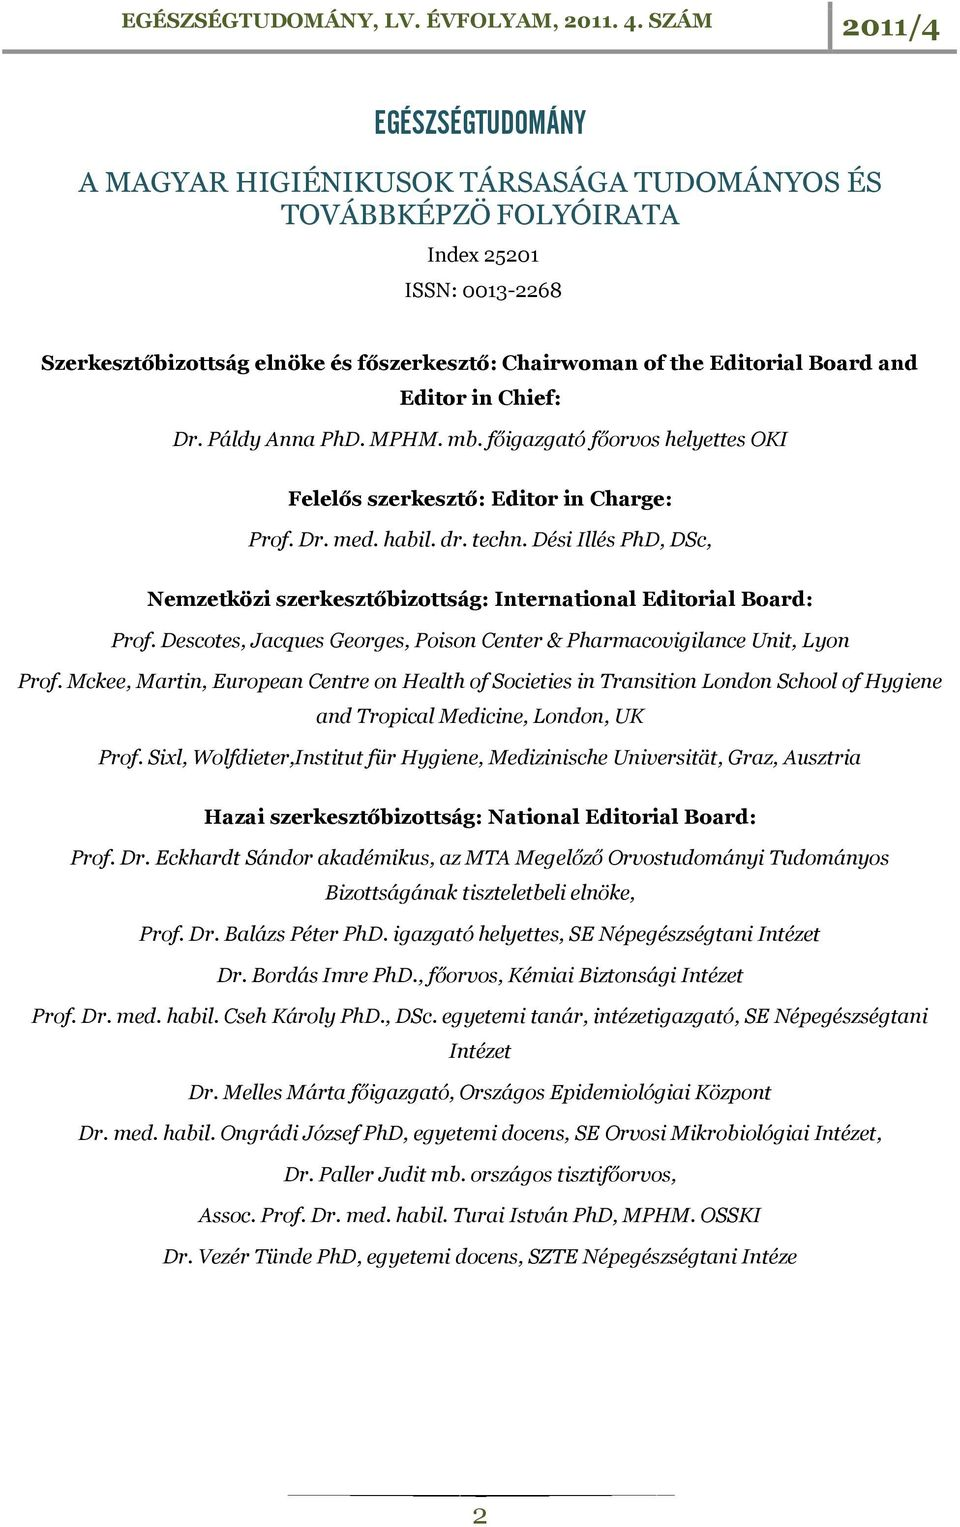 Dési Illés PhD, DSc, Nemzetközi szerkesztőbizottság: International Editorial Board: Prof. Descotes, Jacques Georges, Poison Center & Pharmacovigilance Unit, Lyon Prof.